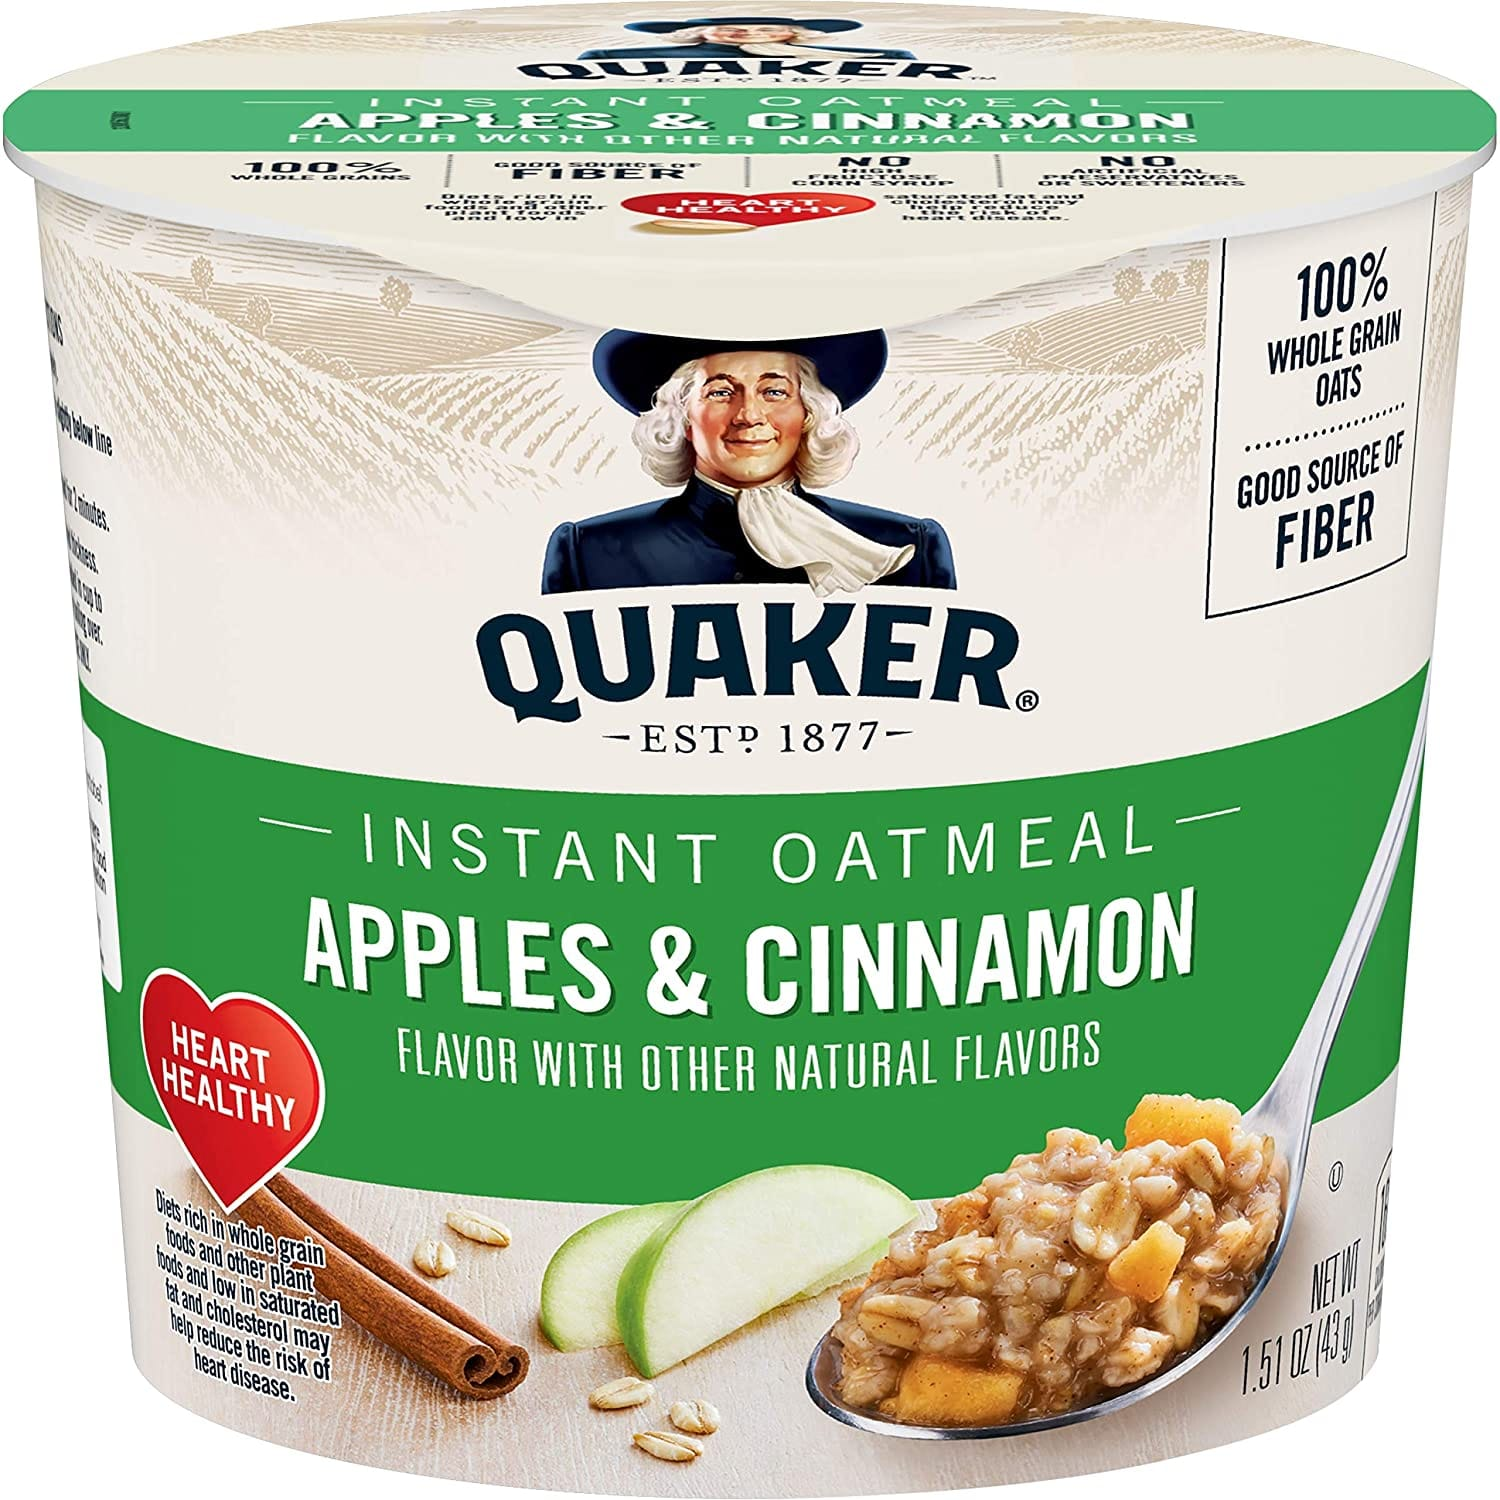 12-Count Quaker Instant Oatmeal Express Cups (Apples & Cinnamon) $8.60 w/ S&S + Free S&H w/ Prime or $25+